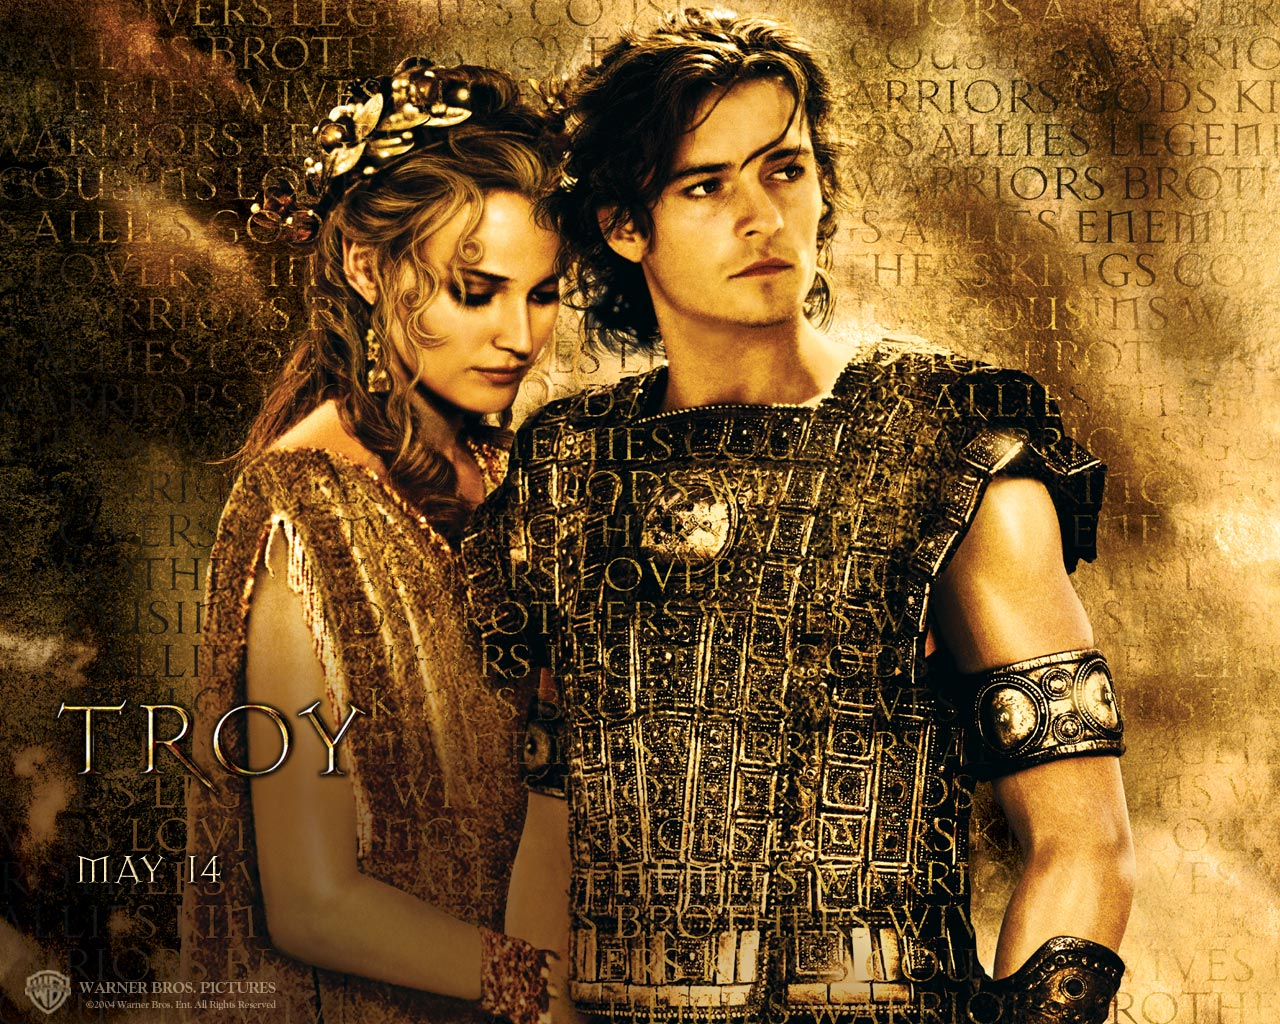 Helen and Paris of Troy portrayed by Orlando Bloom and Diane Kruger in the movie 'Troy' [Credit - LegendLoveStory]